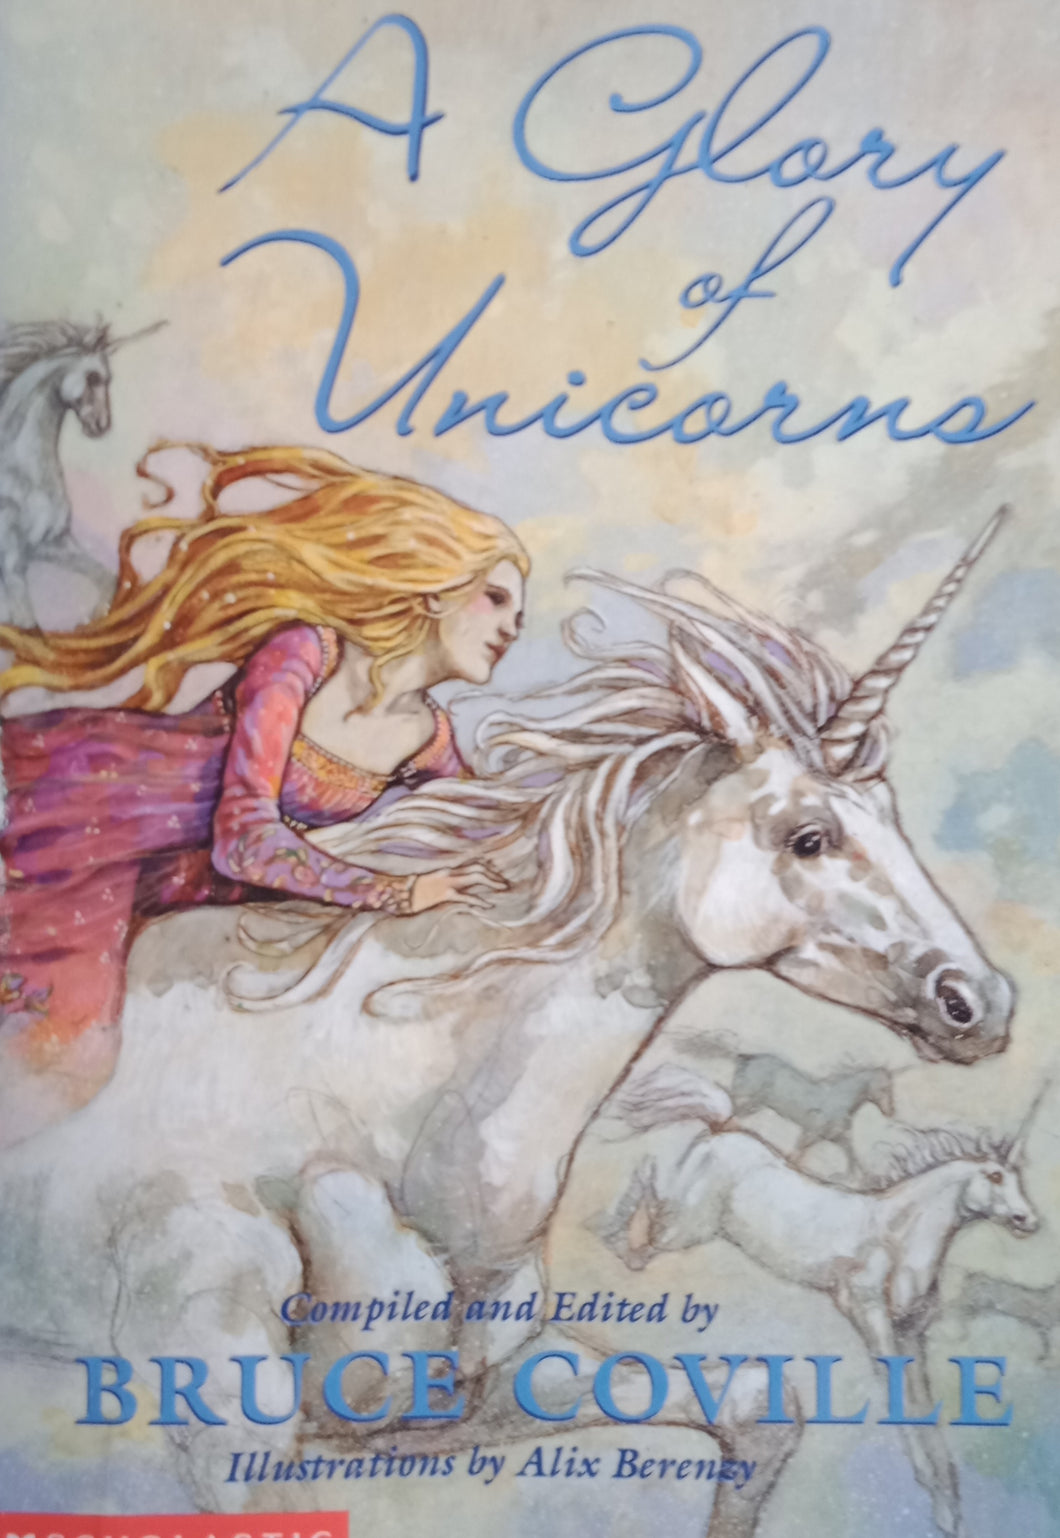 A Glory of Unicorn by Bruce Coville